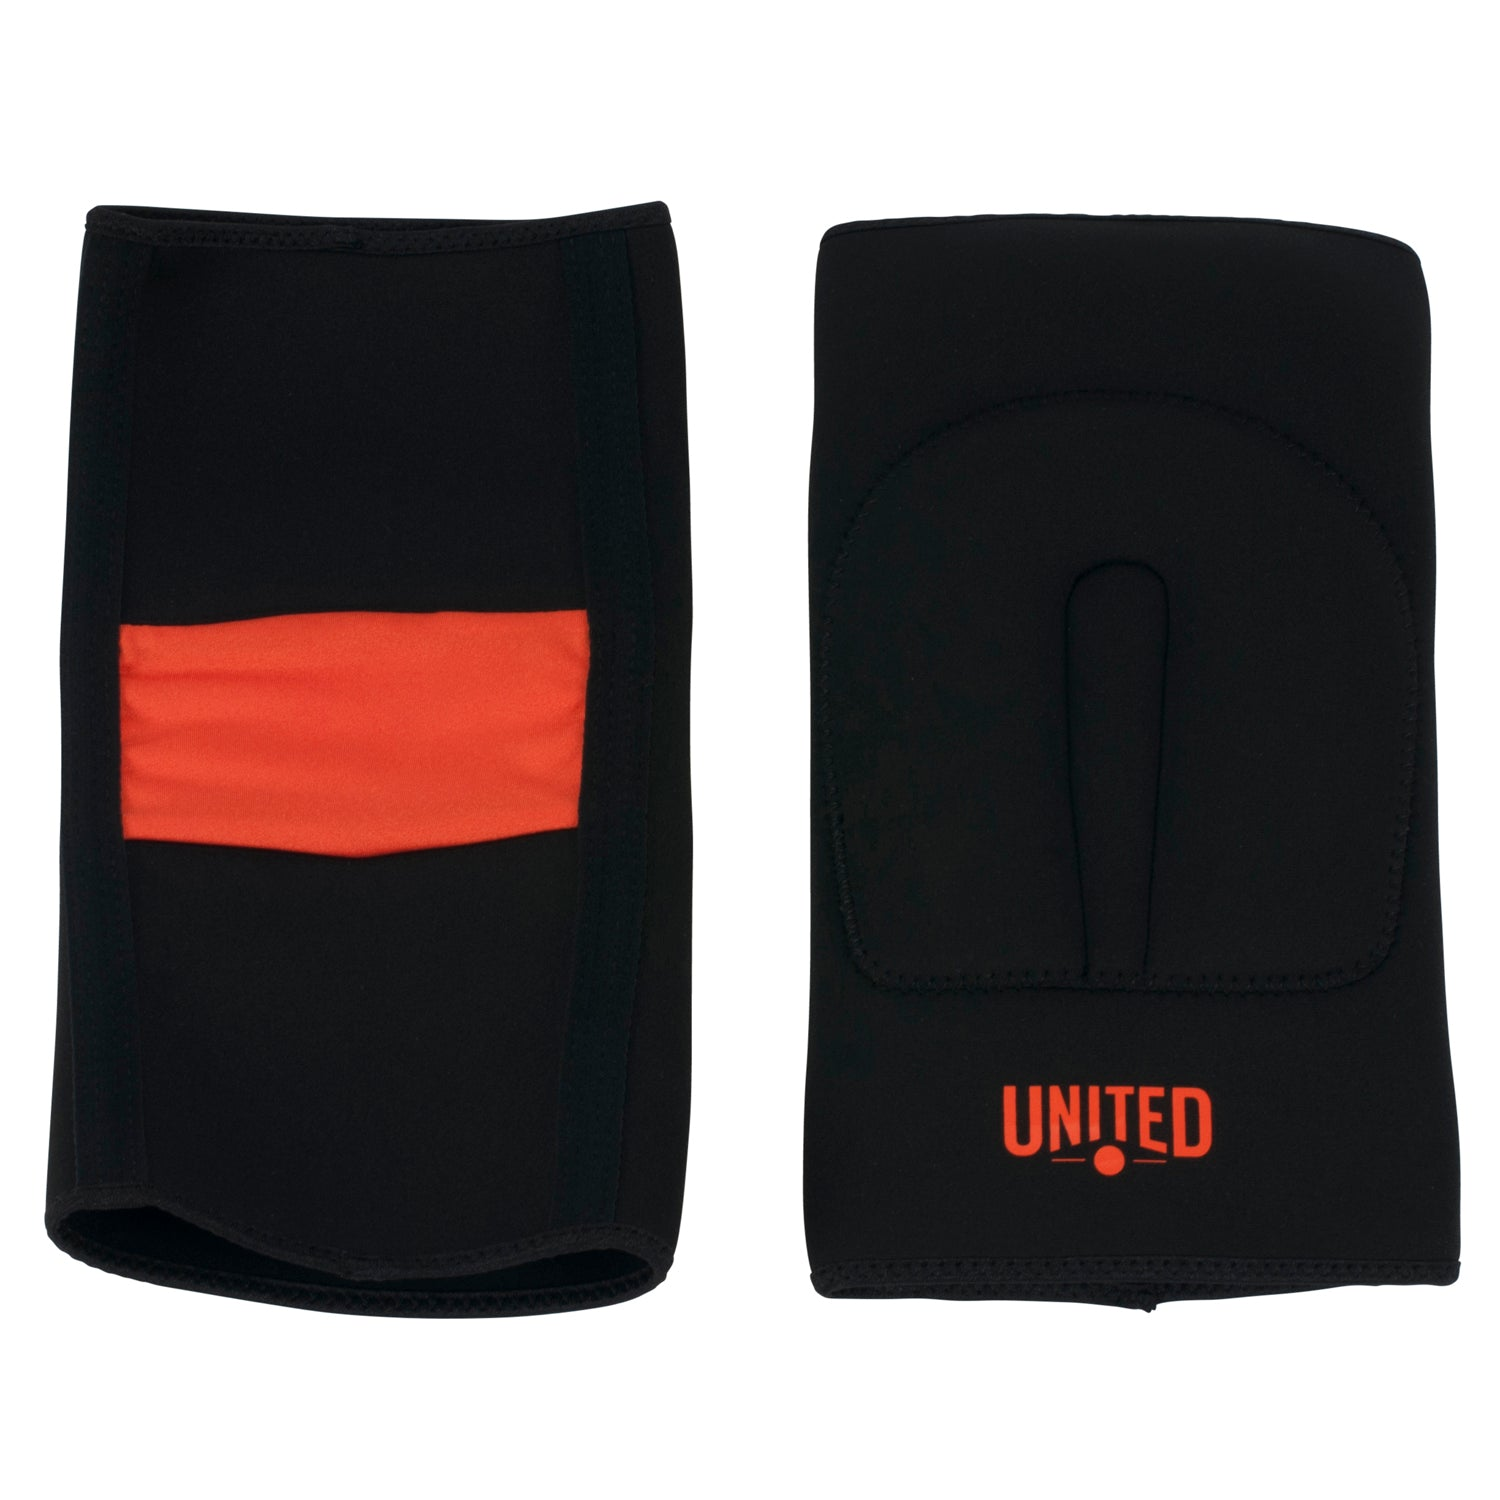 United Signature Knee Pad